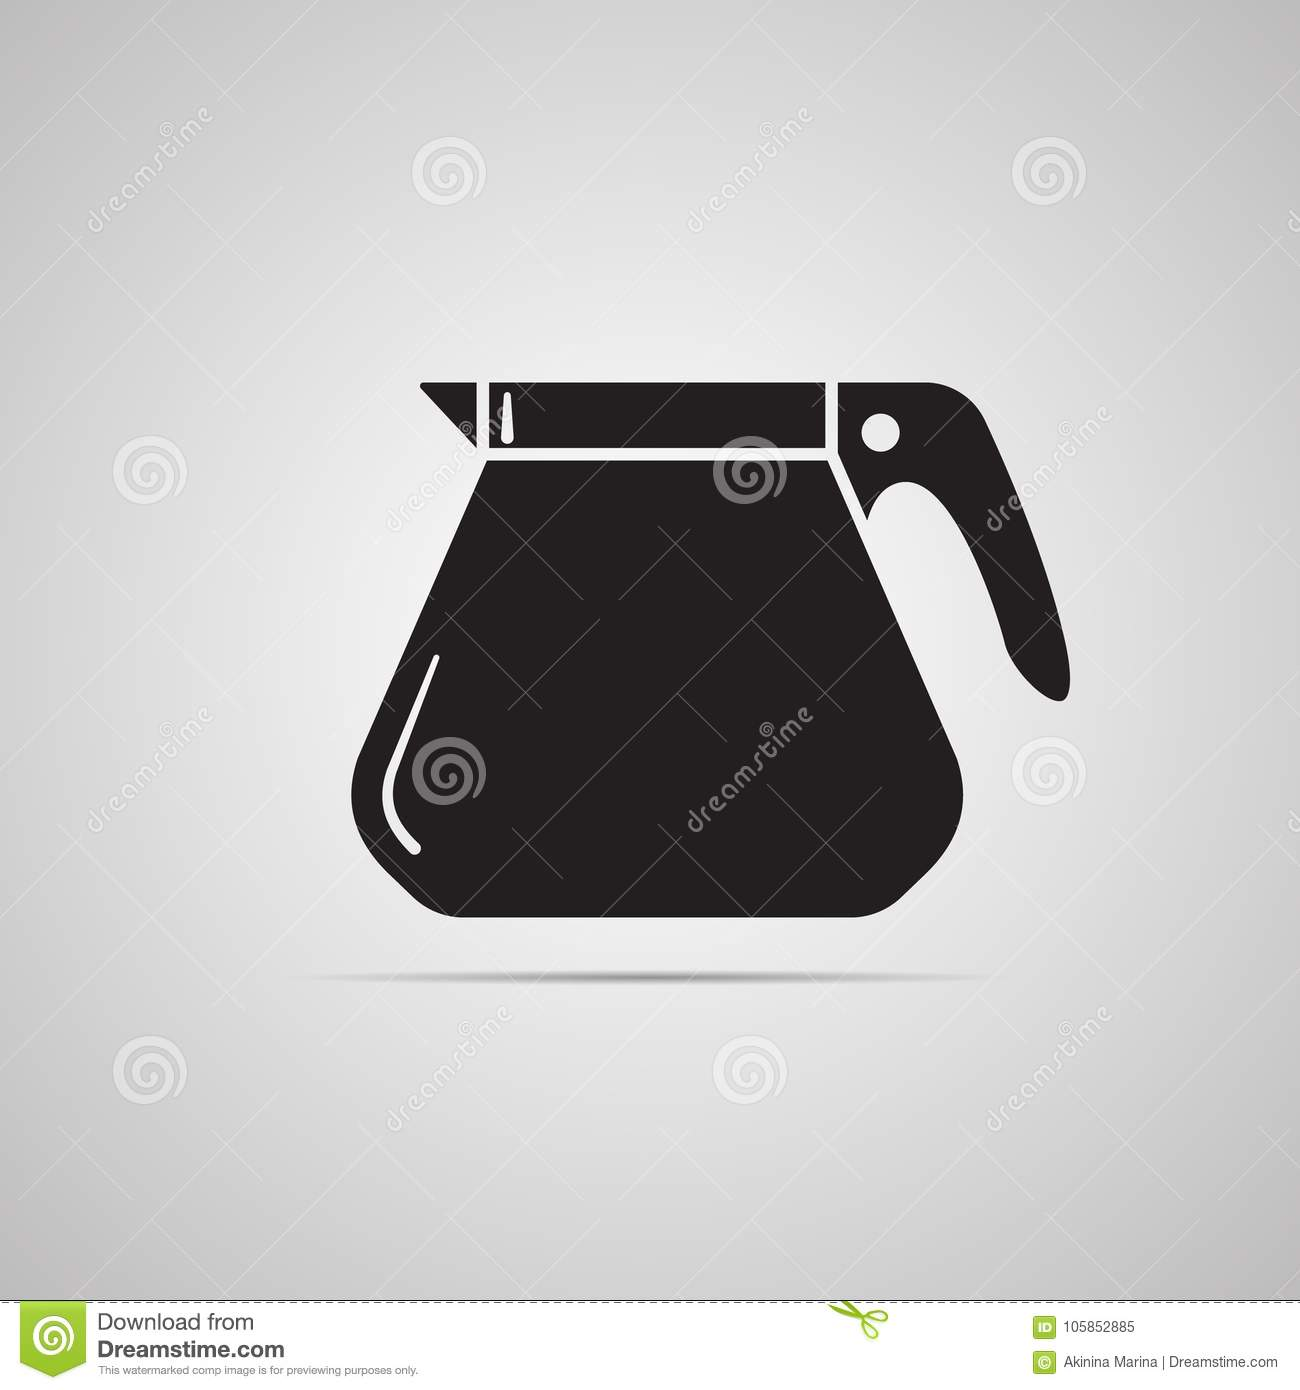 Silhouette Flat Icon, Simple Vector Design With Shadow  Coffee Maker